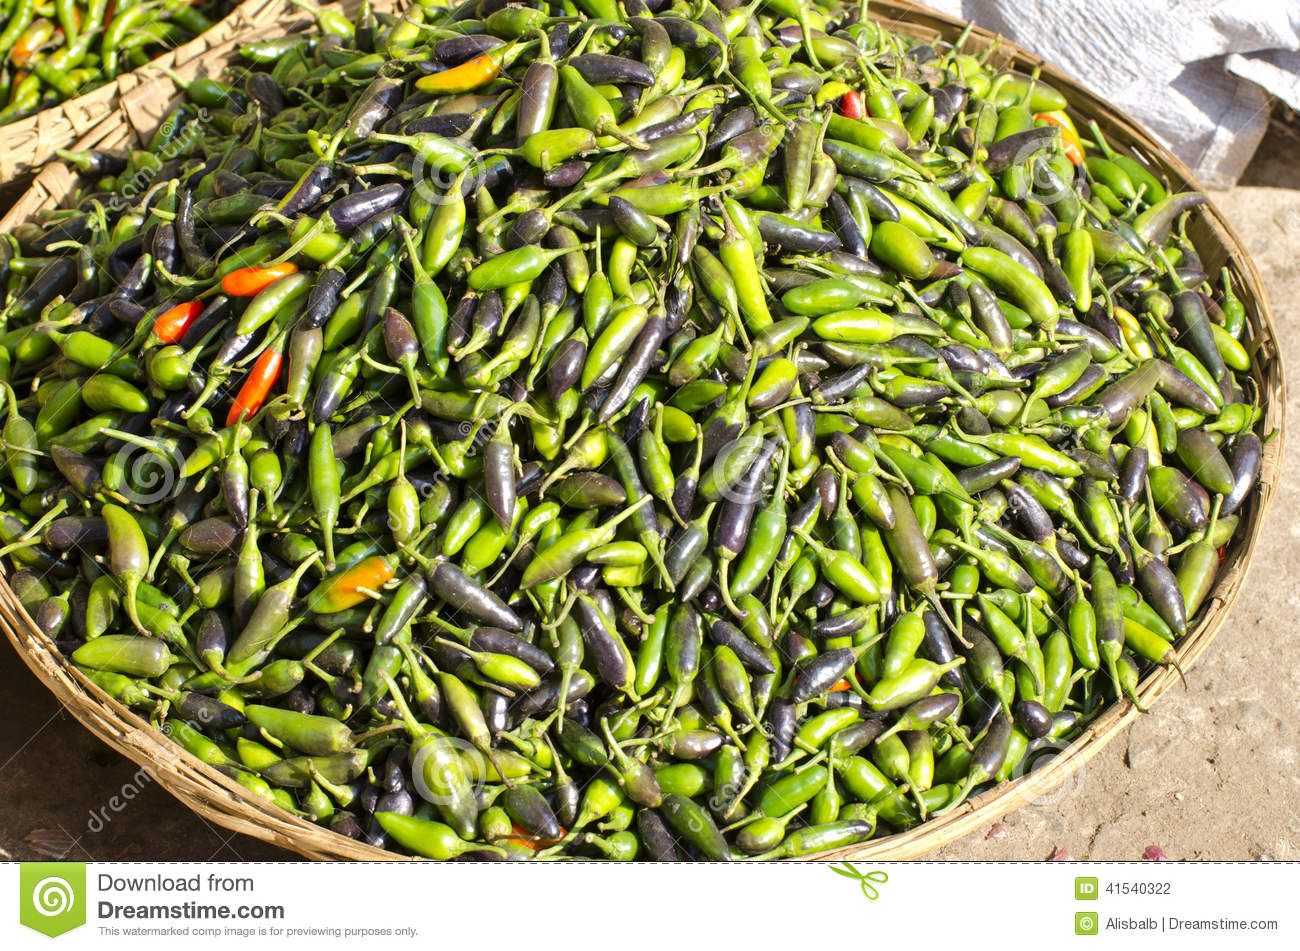 Pictures of asian peppers are not